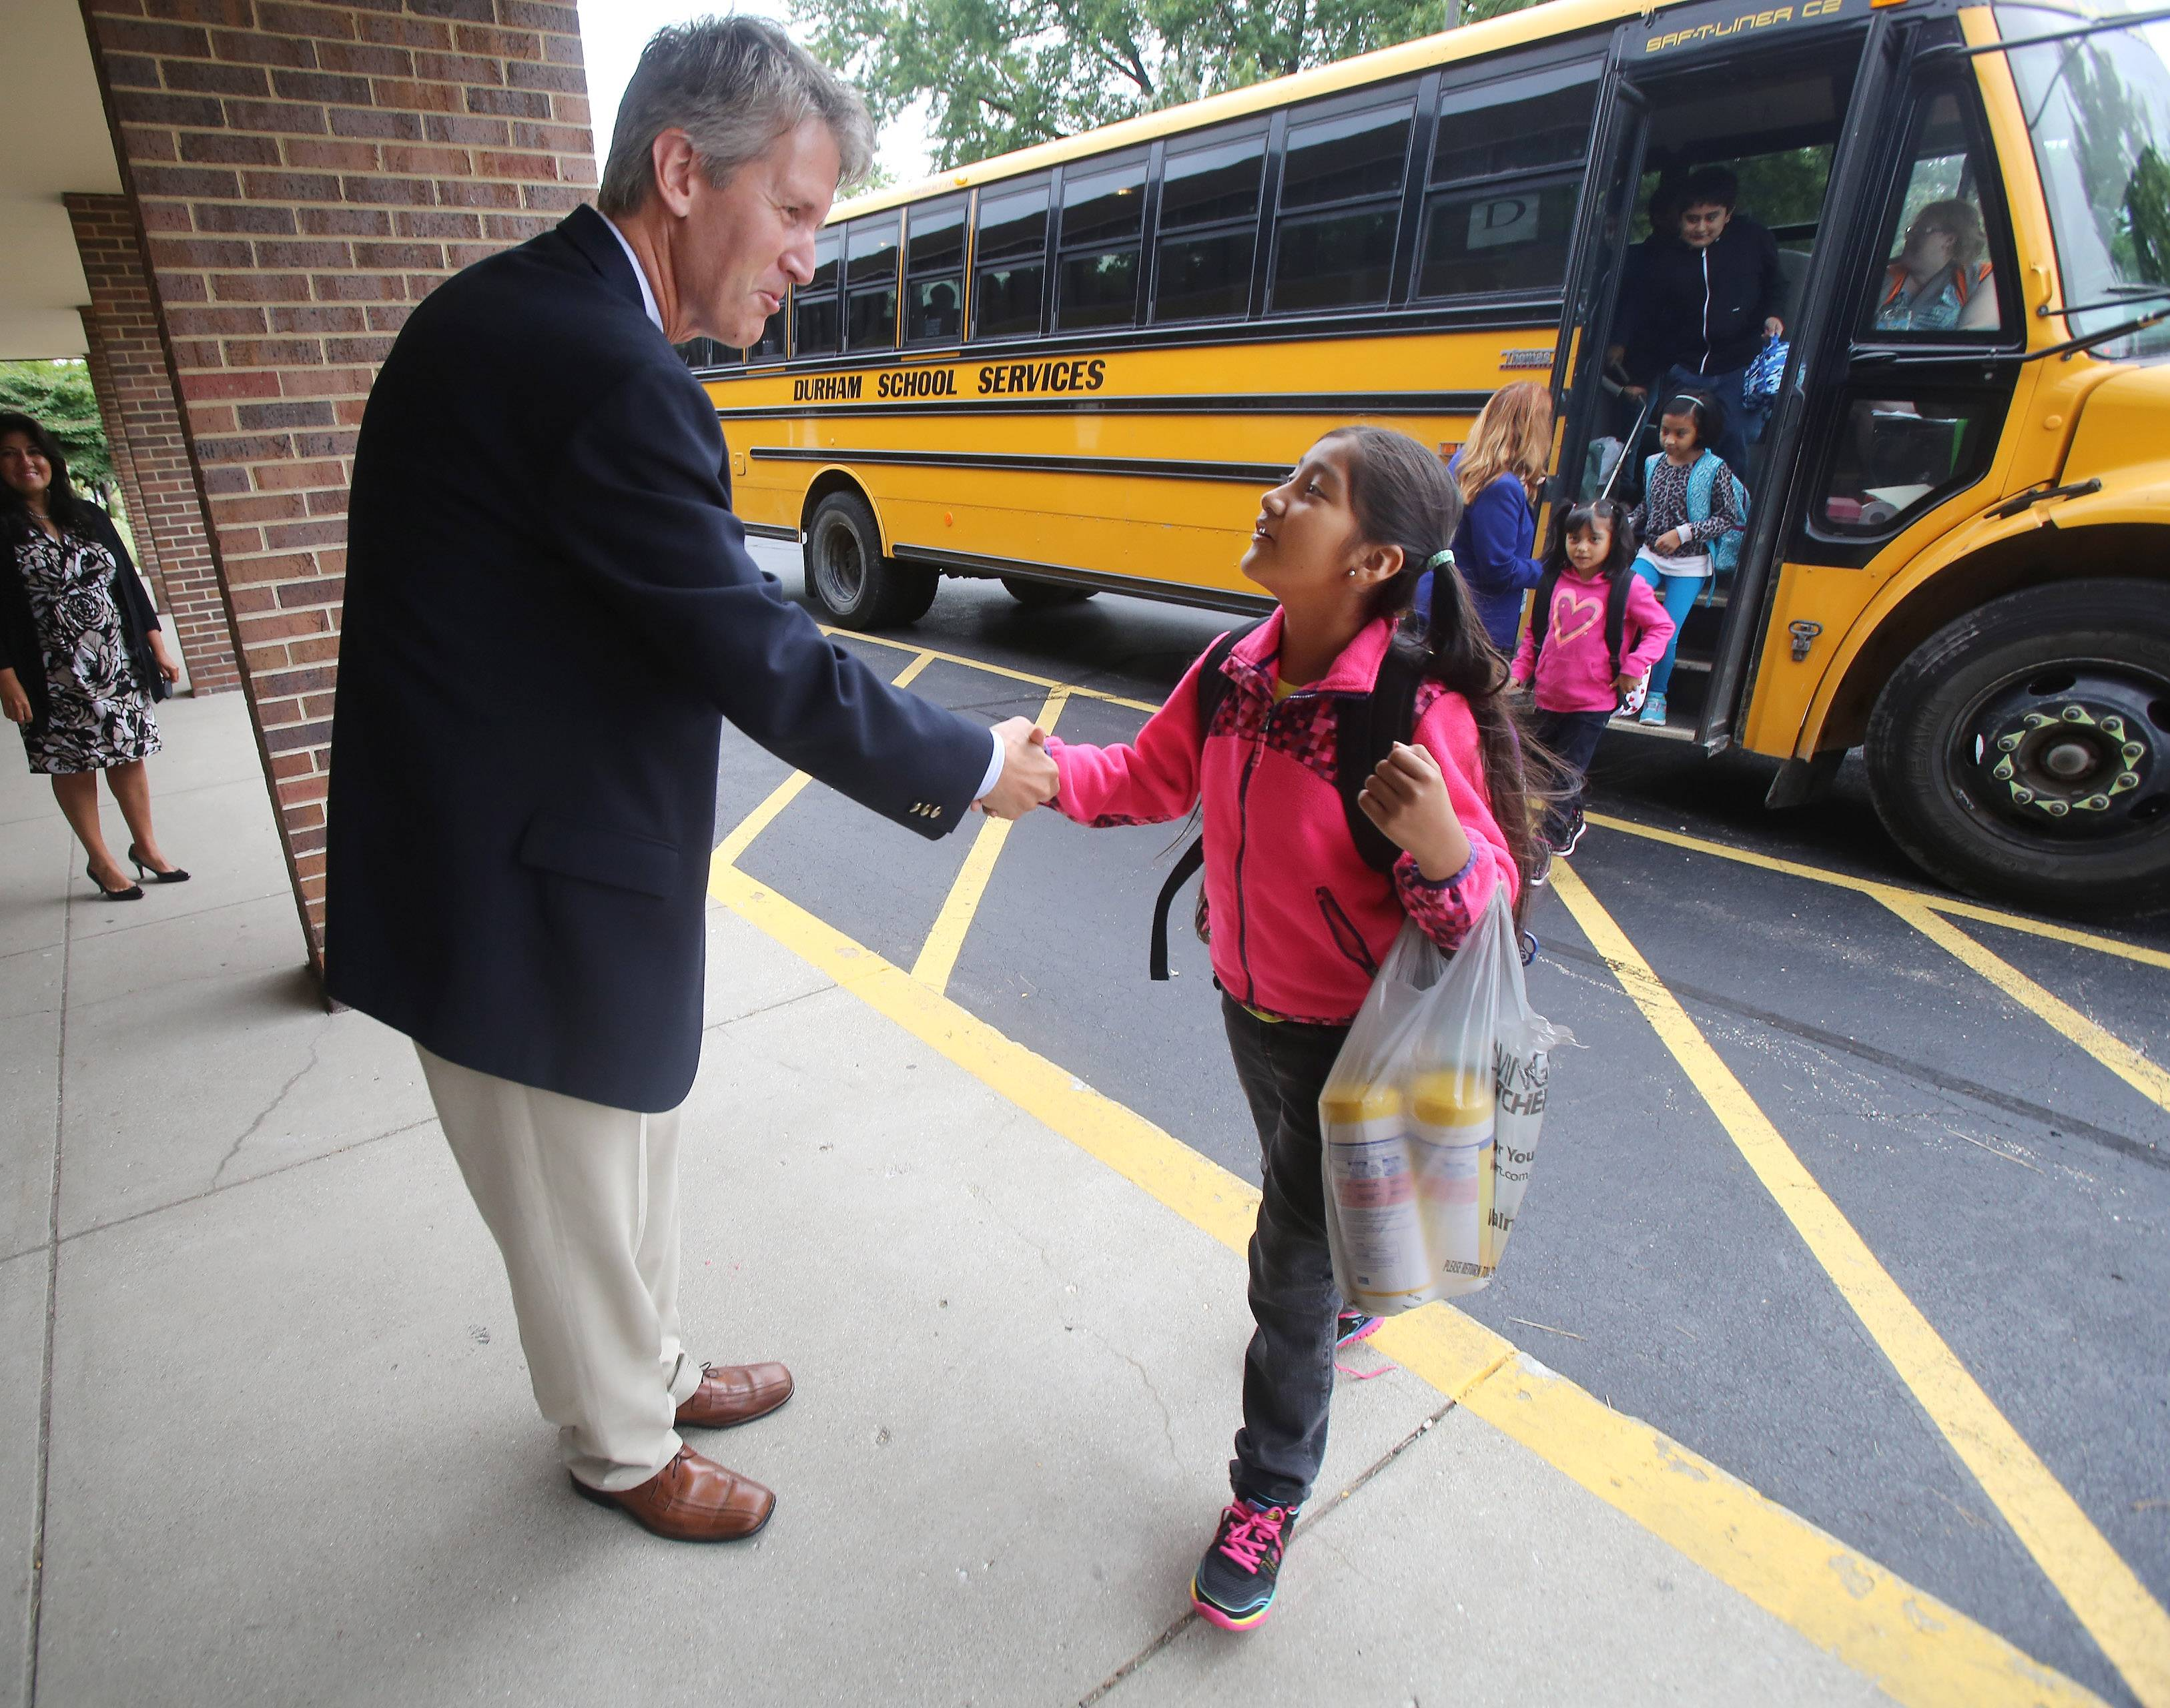 Mundelein Elementary District 75's new superintendent, Andy Henrikson, shakes hands with Giselle Hernandez as she exits the bus for the first day of classes at Mechanics Grove School in Mundelein. Henrickson and Principal Kathleen Miller greeted students Tuesday.